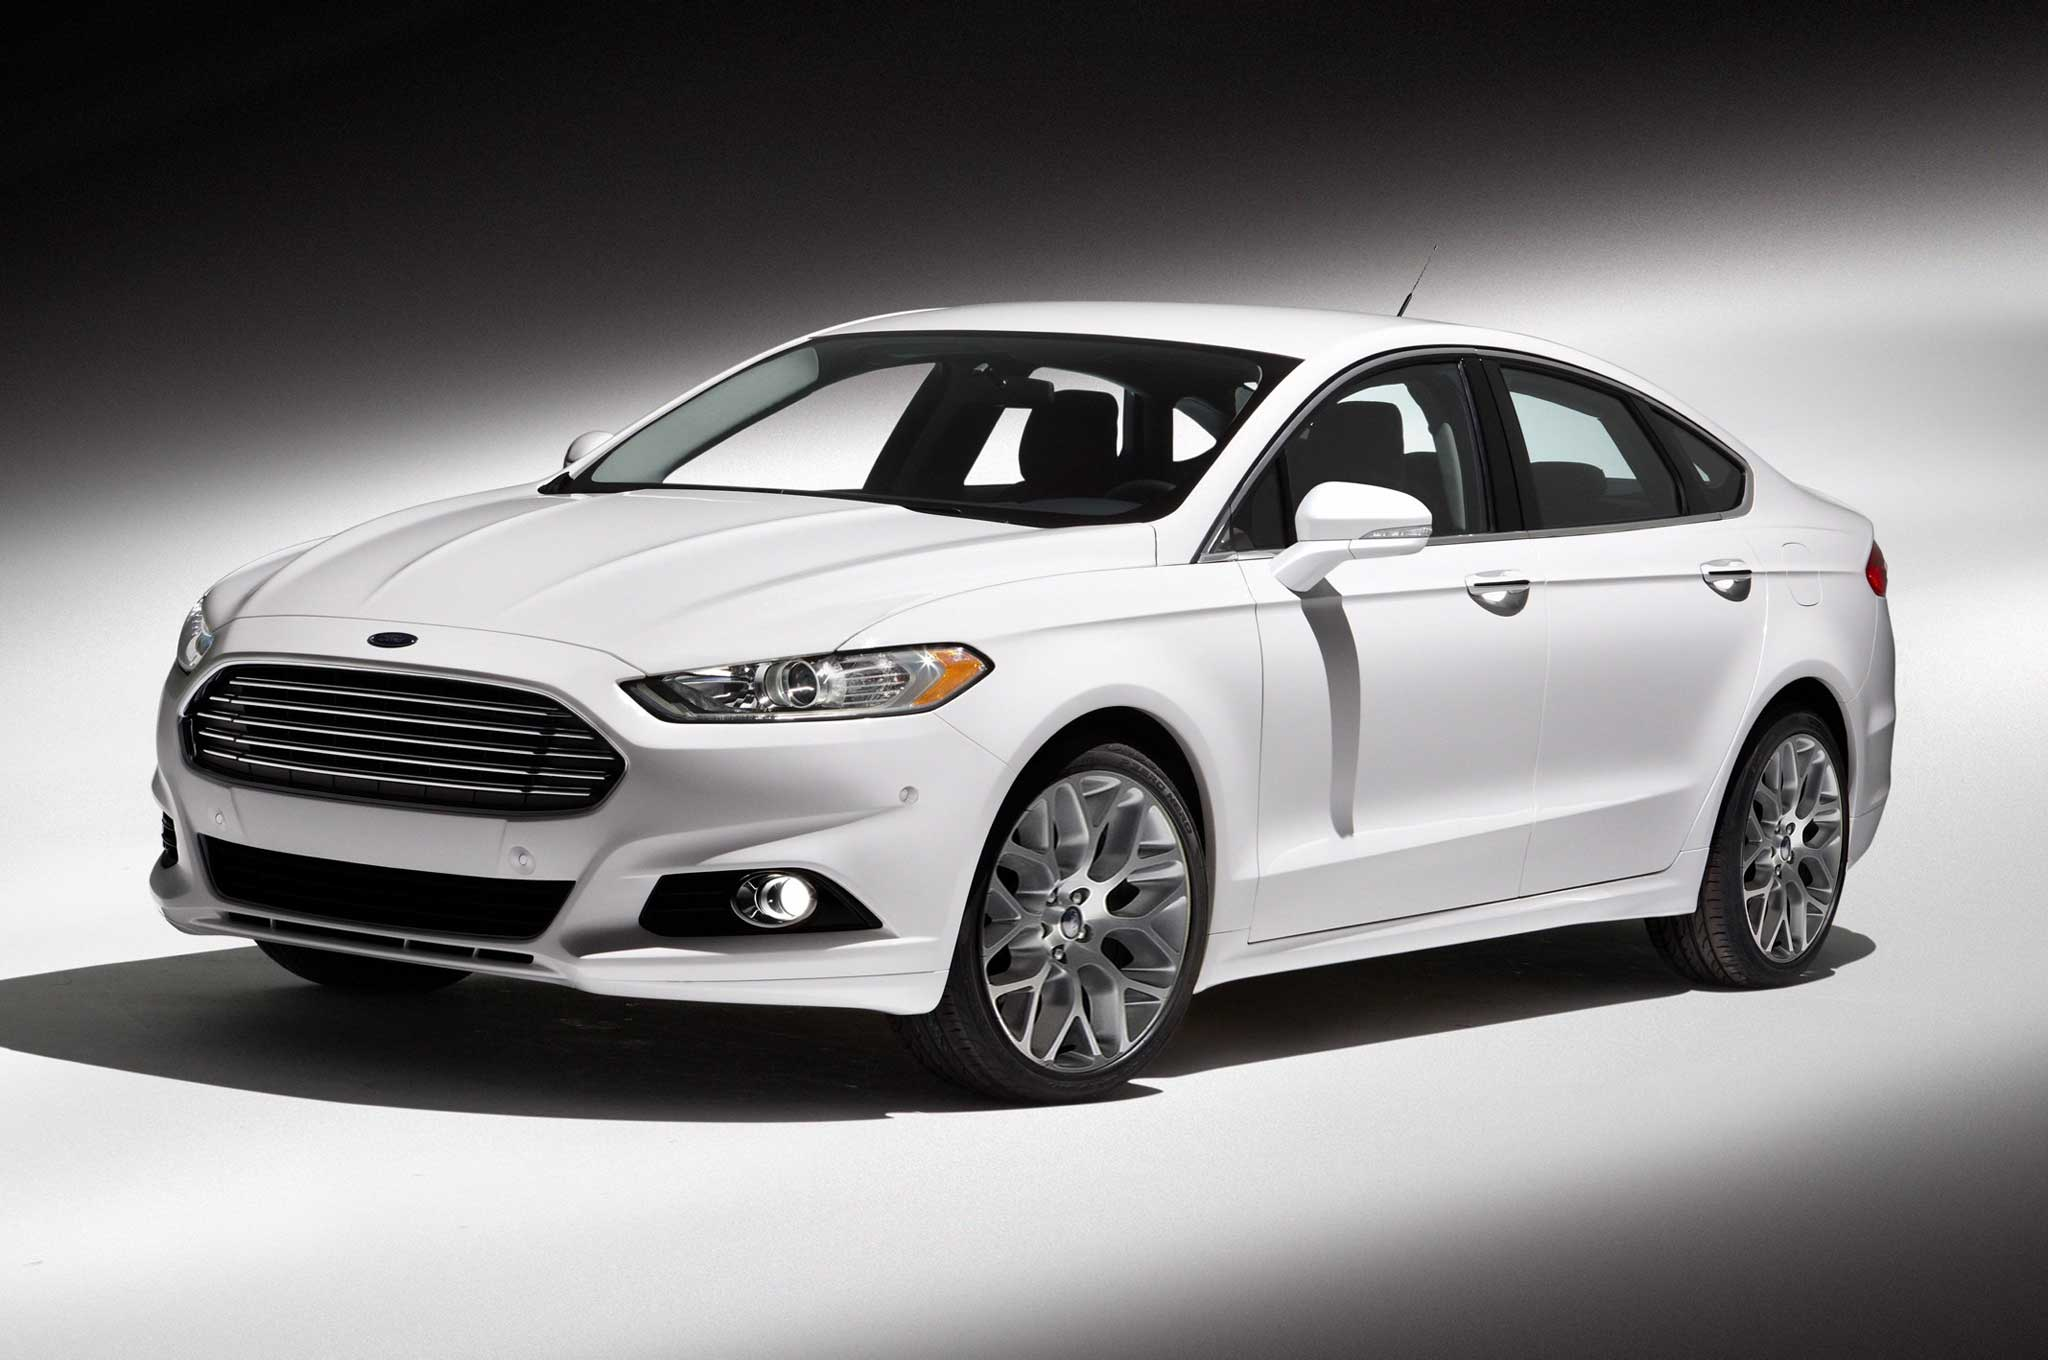 2013 Ford Fusion Front Three Quarter11